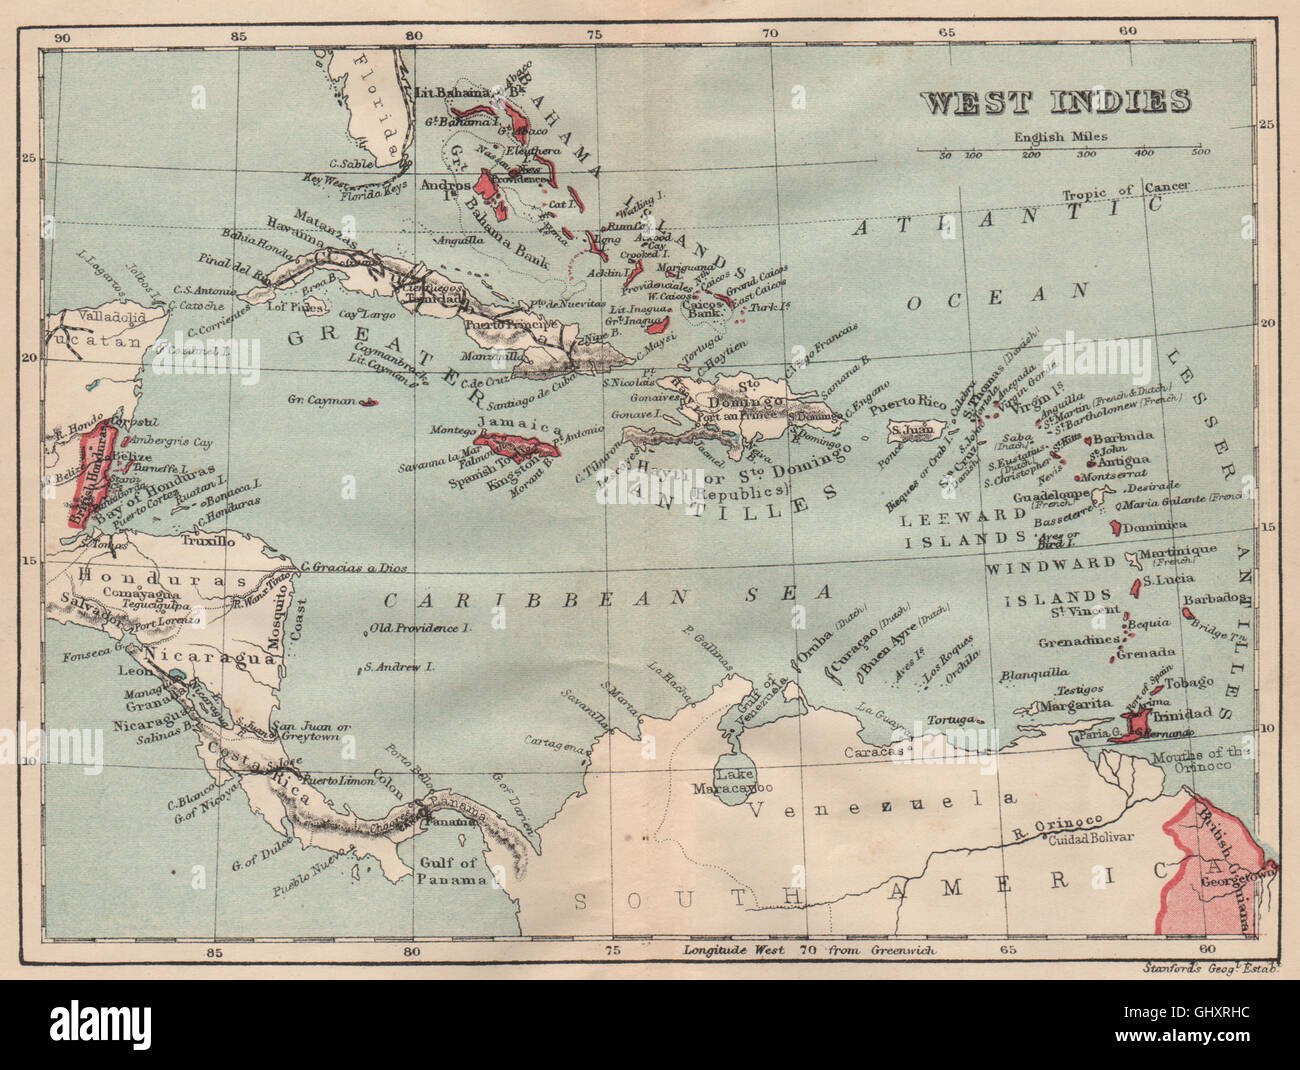 Showing British Islands Colonies Caribbean 1914 Old Map